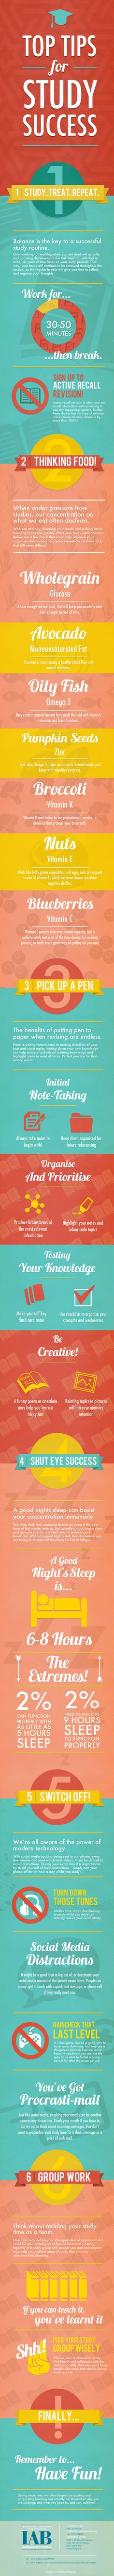 Top Tips for Study Success